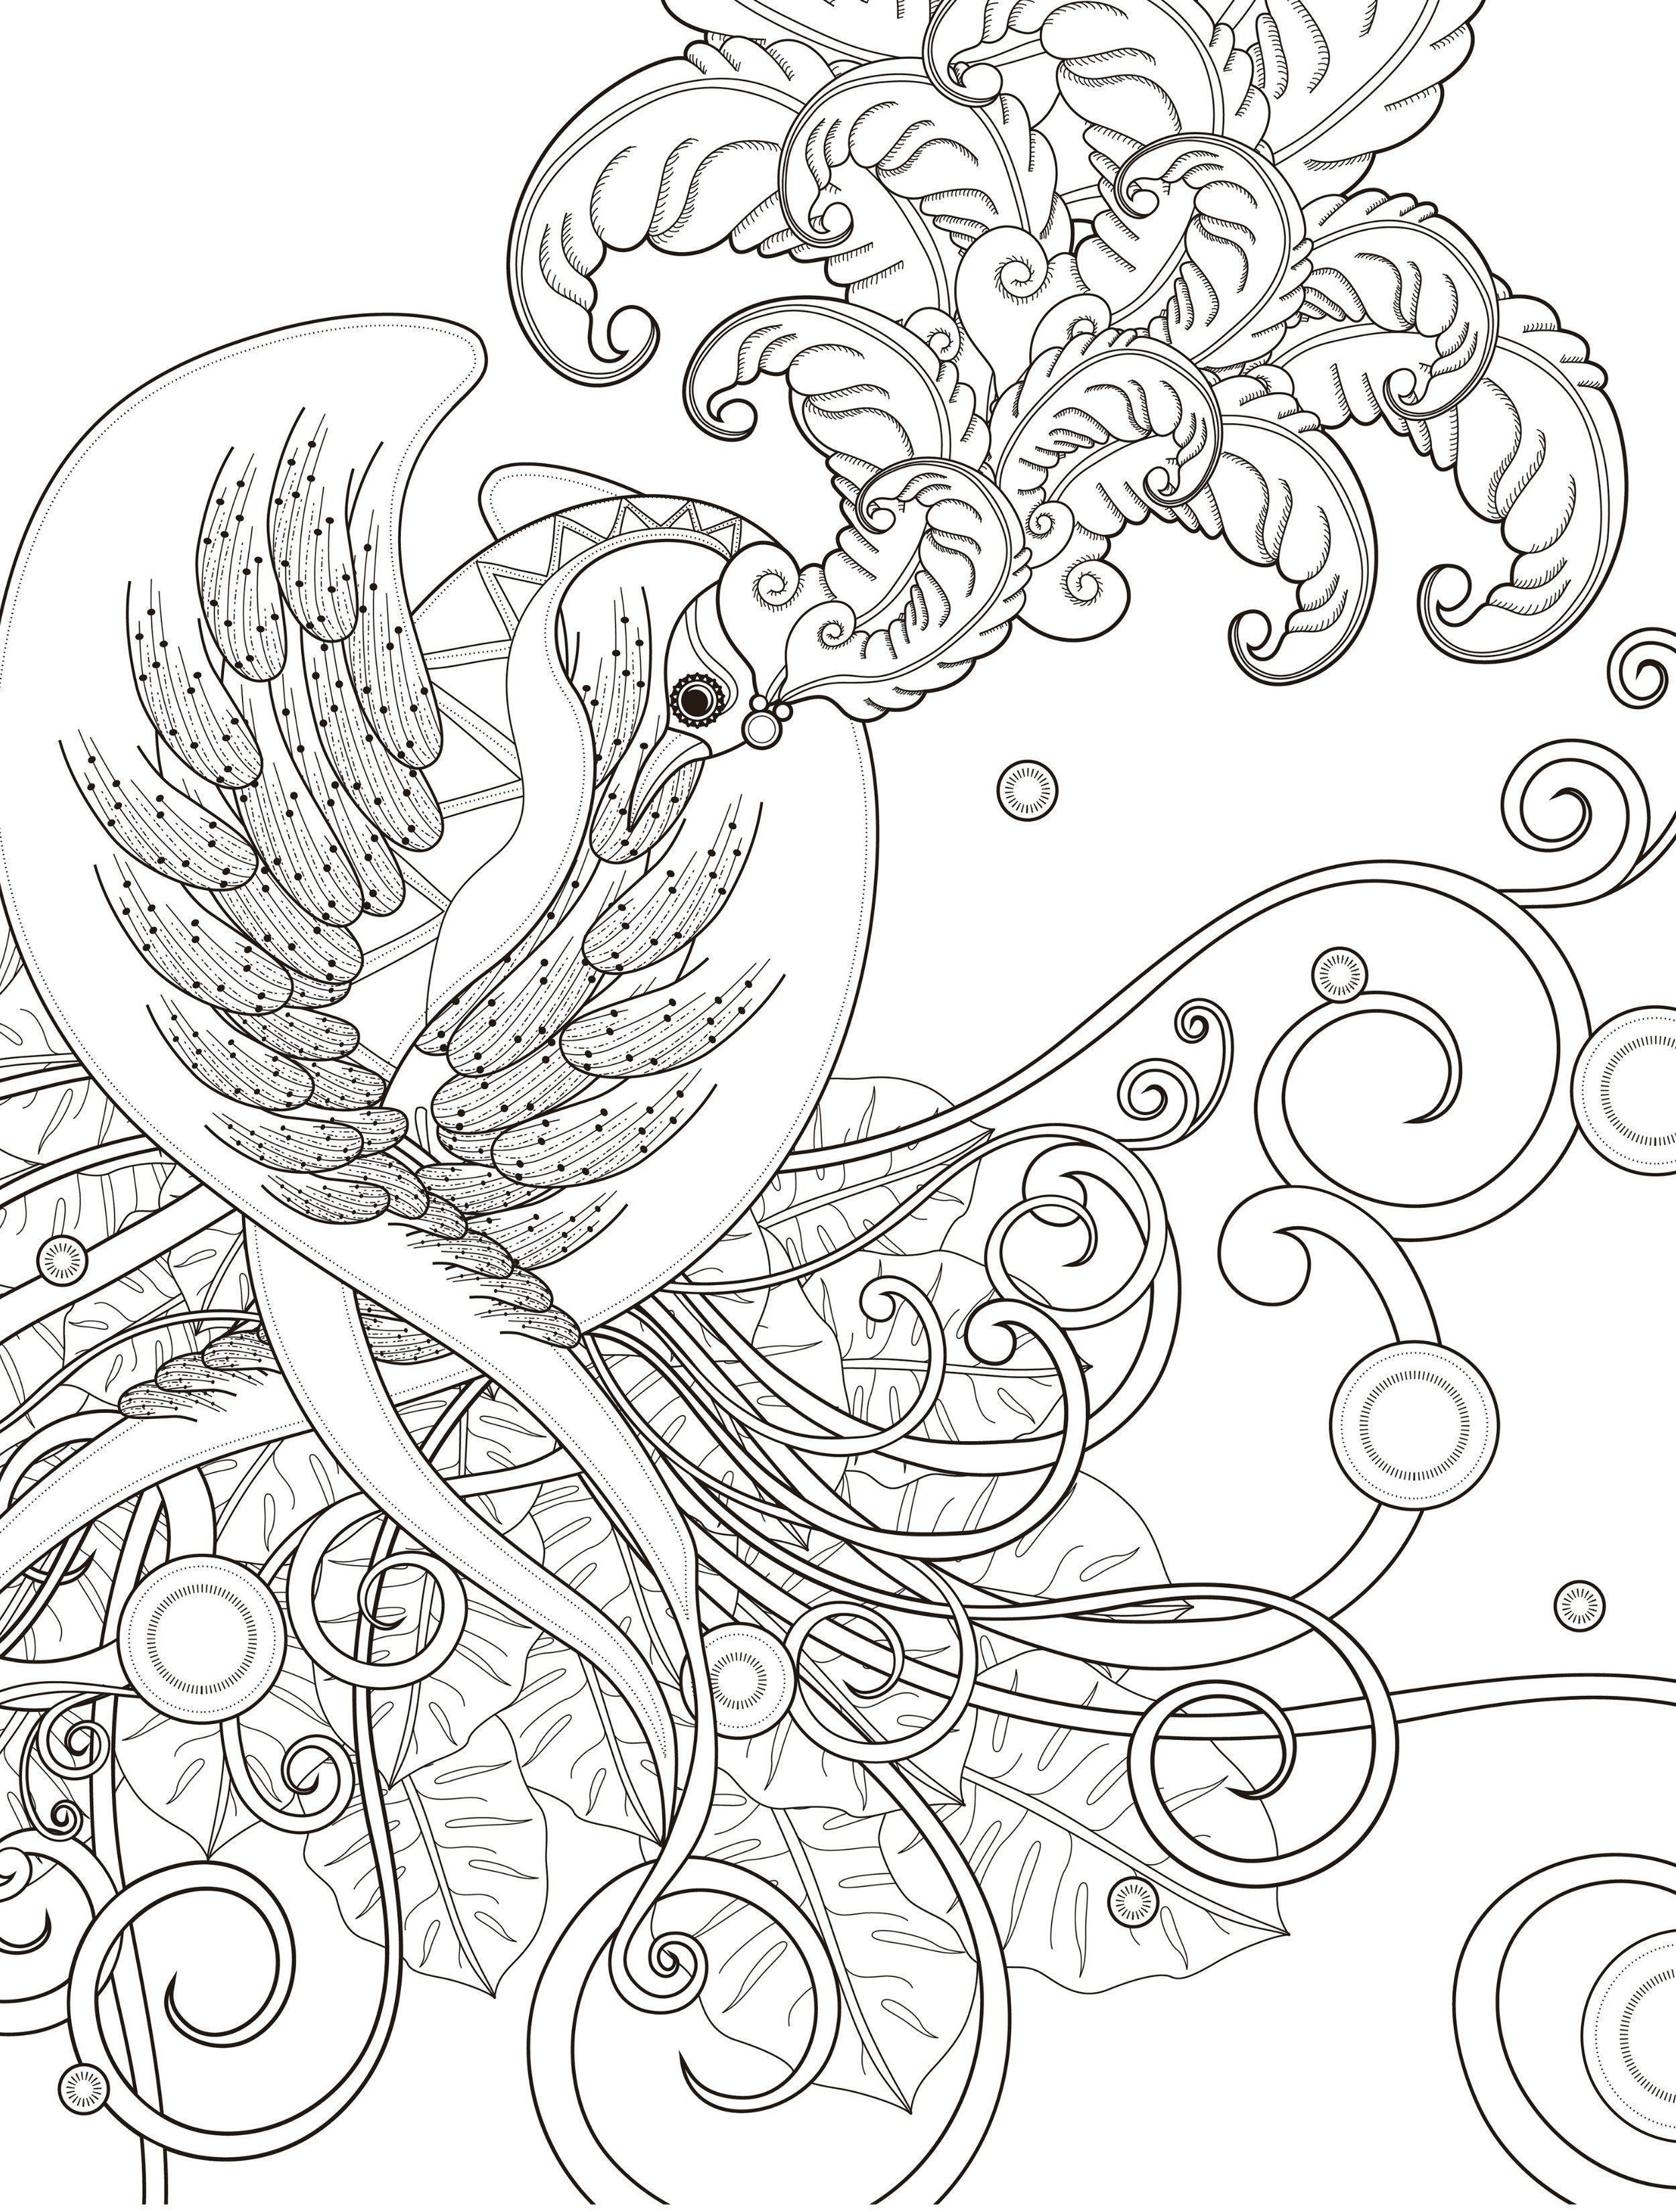 Coloring pages wedding theme - 20 Gorgeous Free Printable Adult Coloring Pages